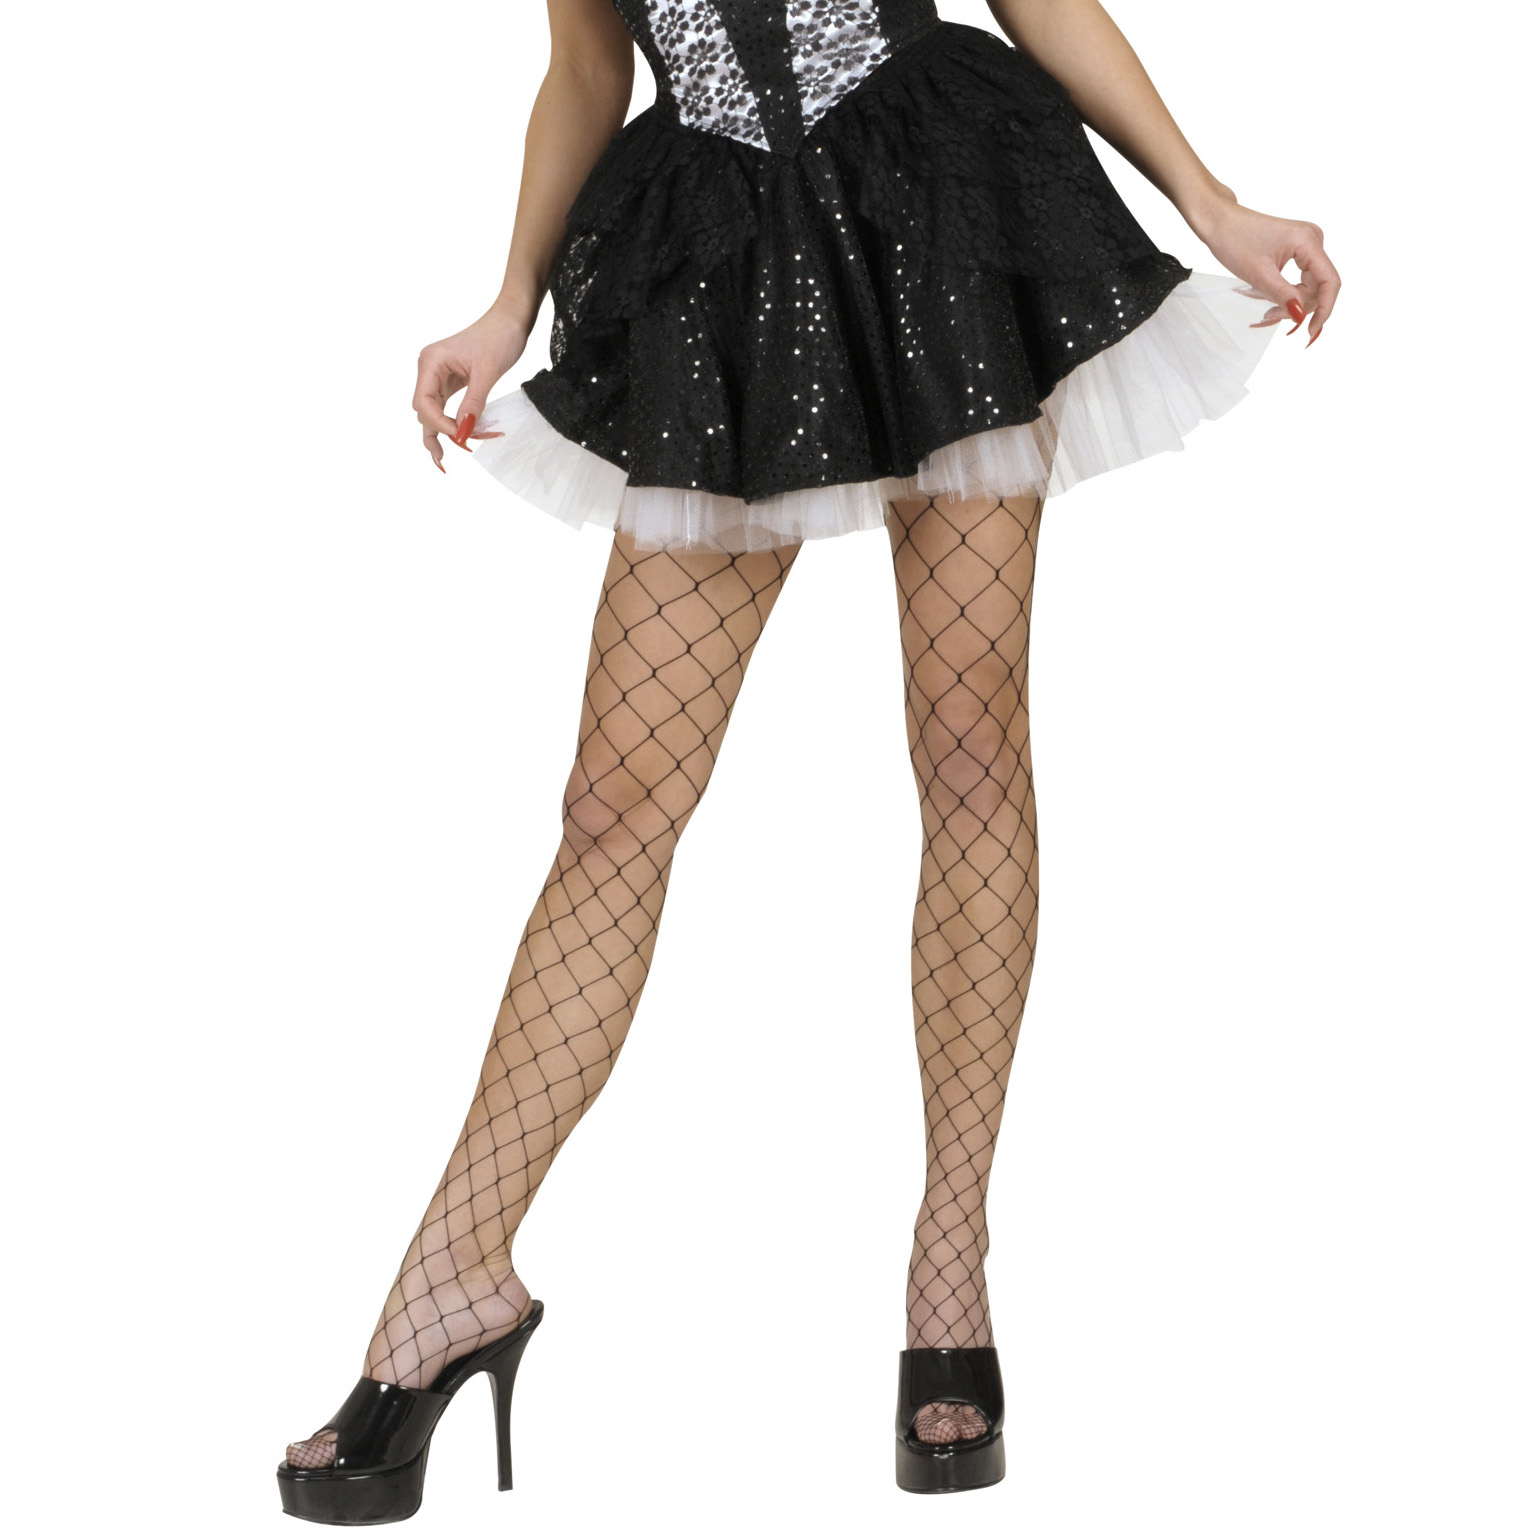 Black Sequin & Lace Skirts with Sewn-In Petticoat Fancy Dress